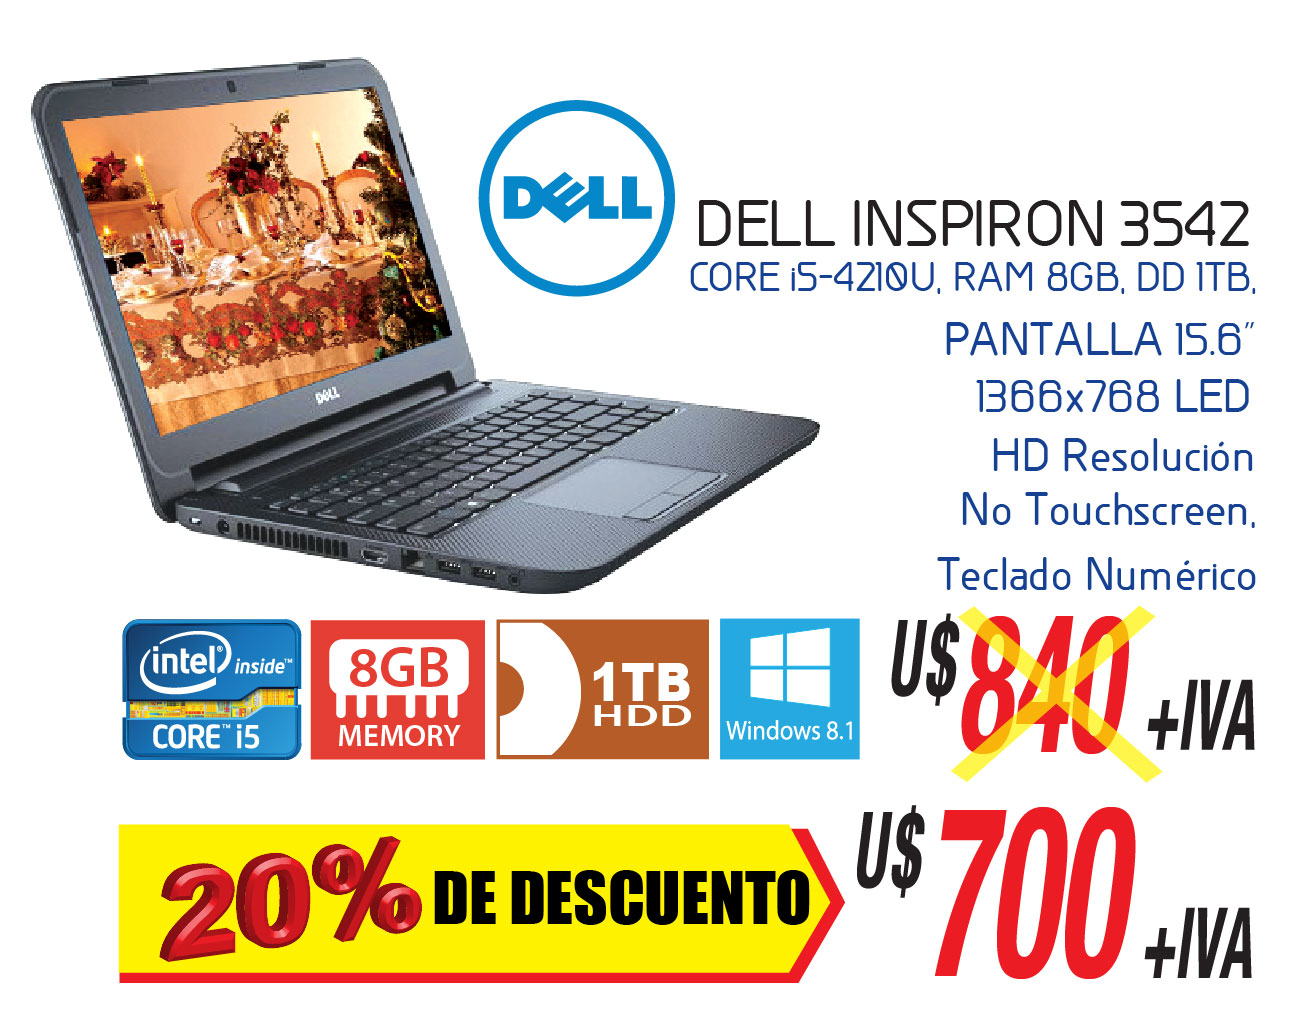 DELL-INSPIRON-3542-DATATEX